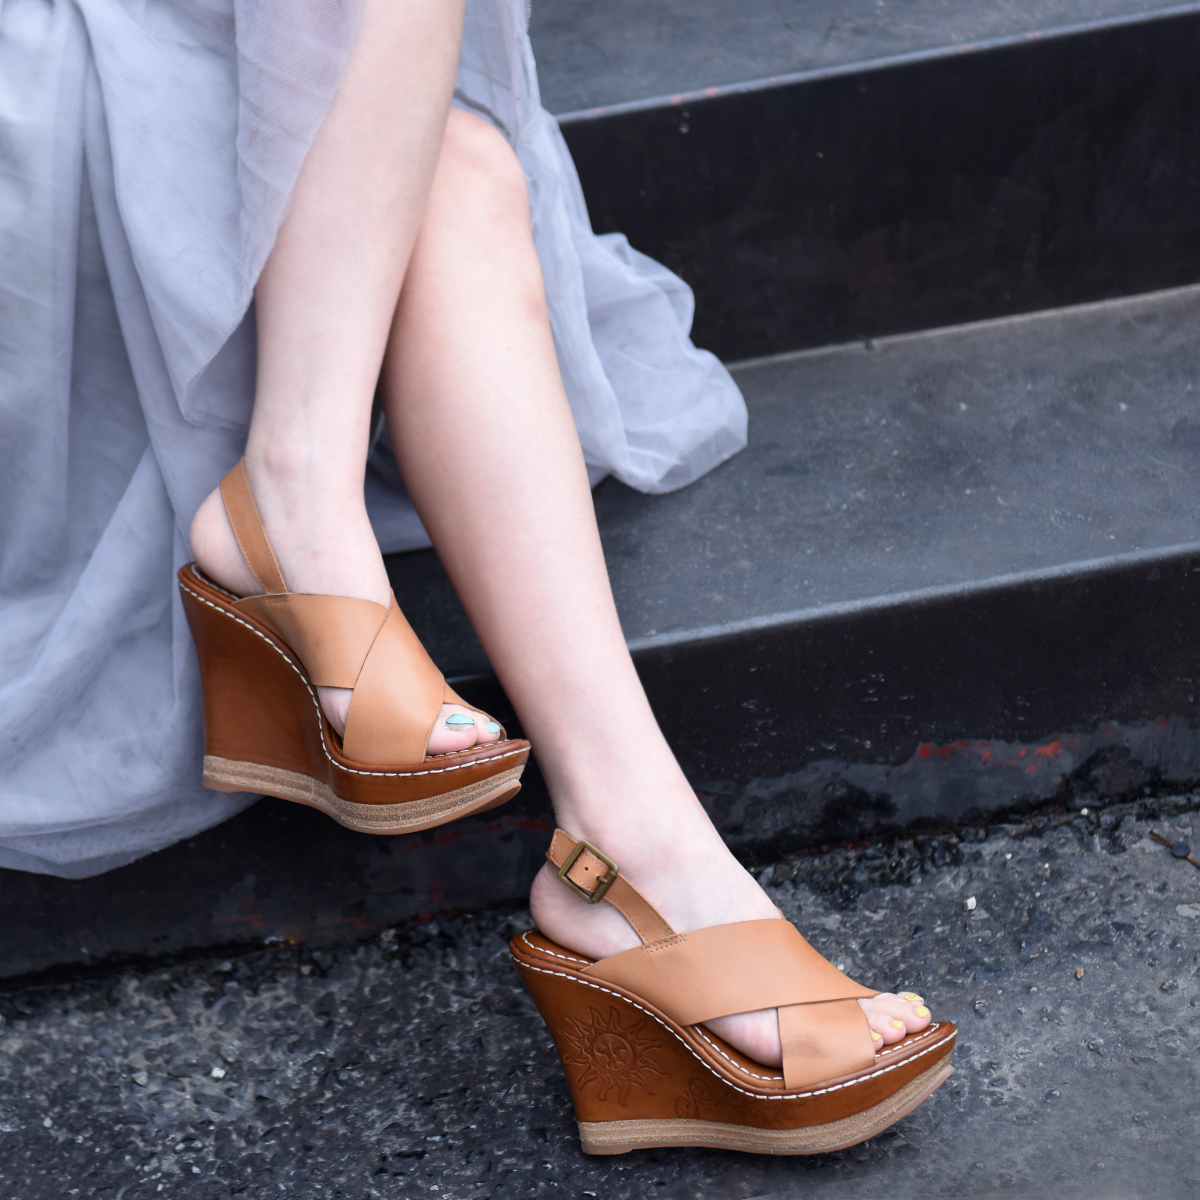 Artmu Original 2019 Summer New Thick Bottom High Heels Women Sandals Elegant Wedge Heels Genuine Leather Handmade Buckle Shoes